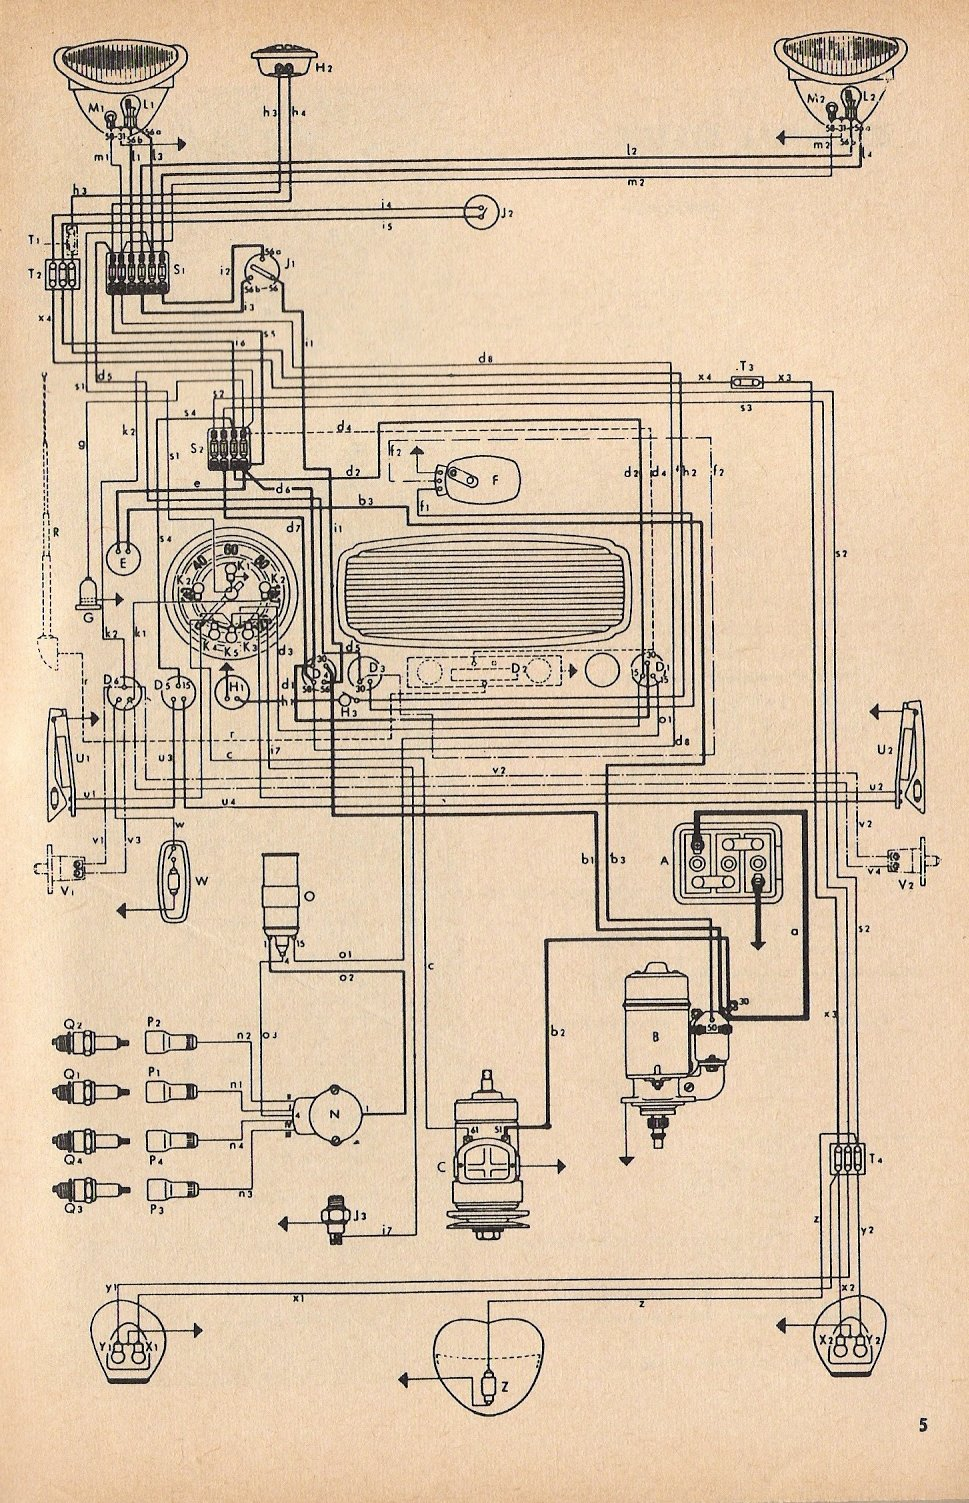 hight resolution of thesamba com type 1 wiring diagrams 1971 vw beetle wiring schematic vw beetle schematic